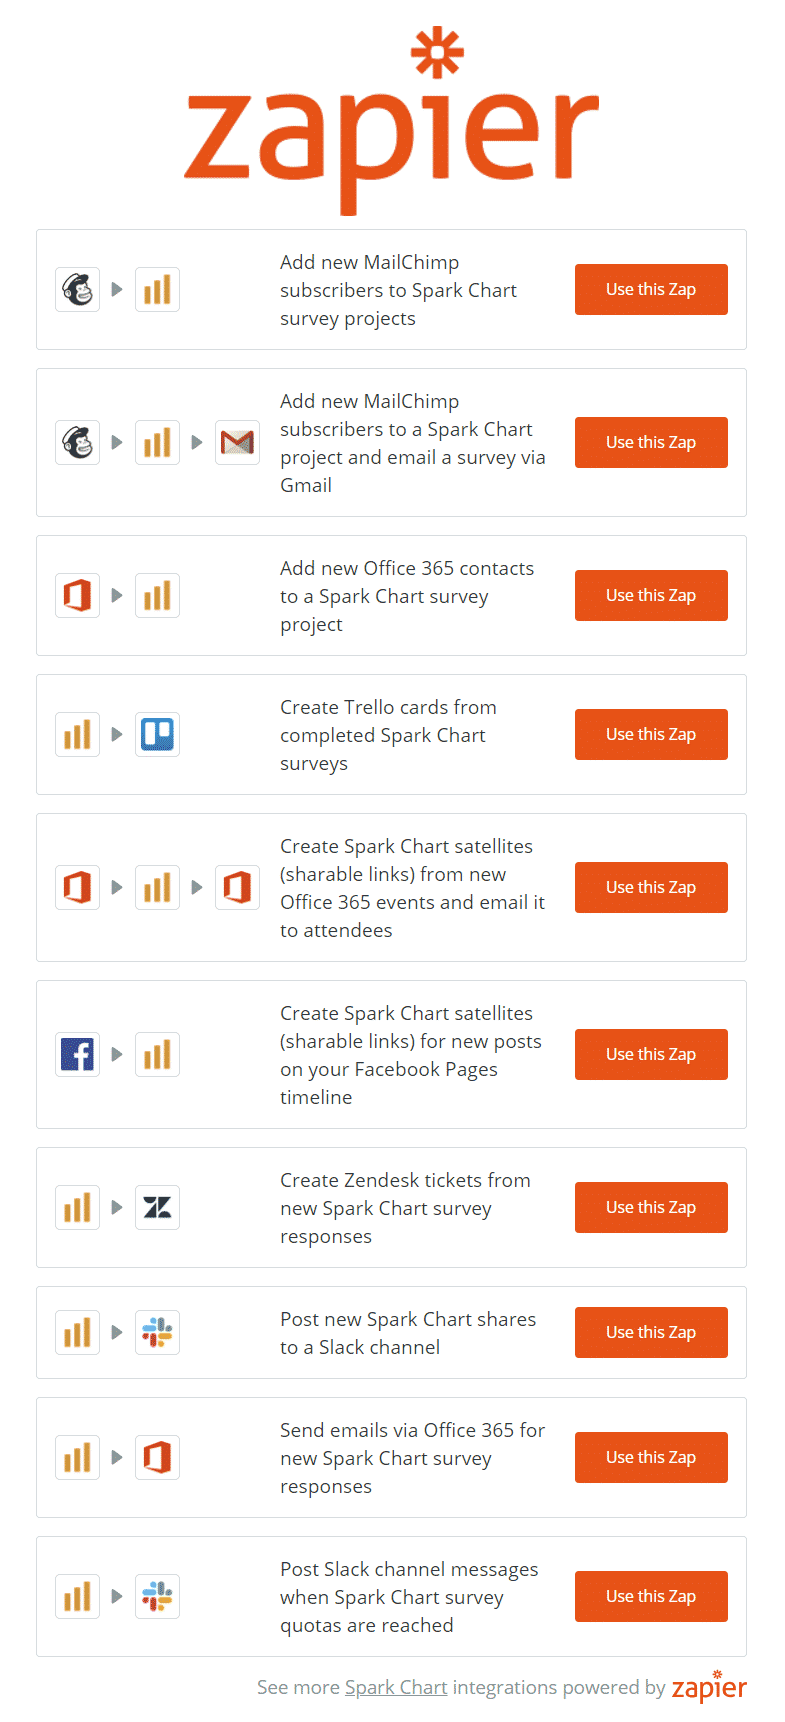 Zapier Survey Integrations